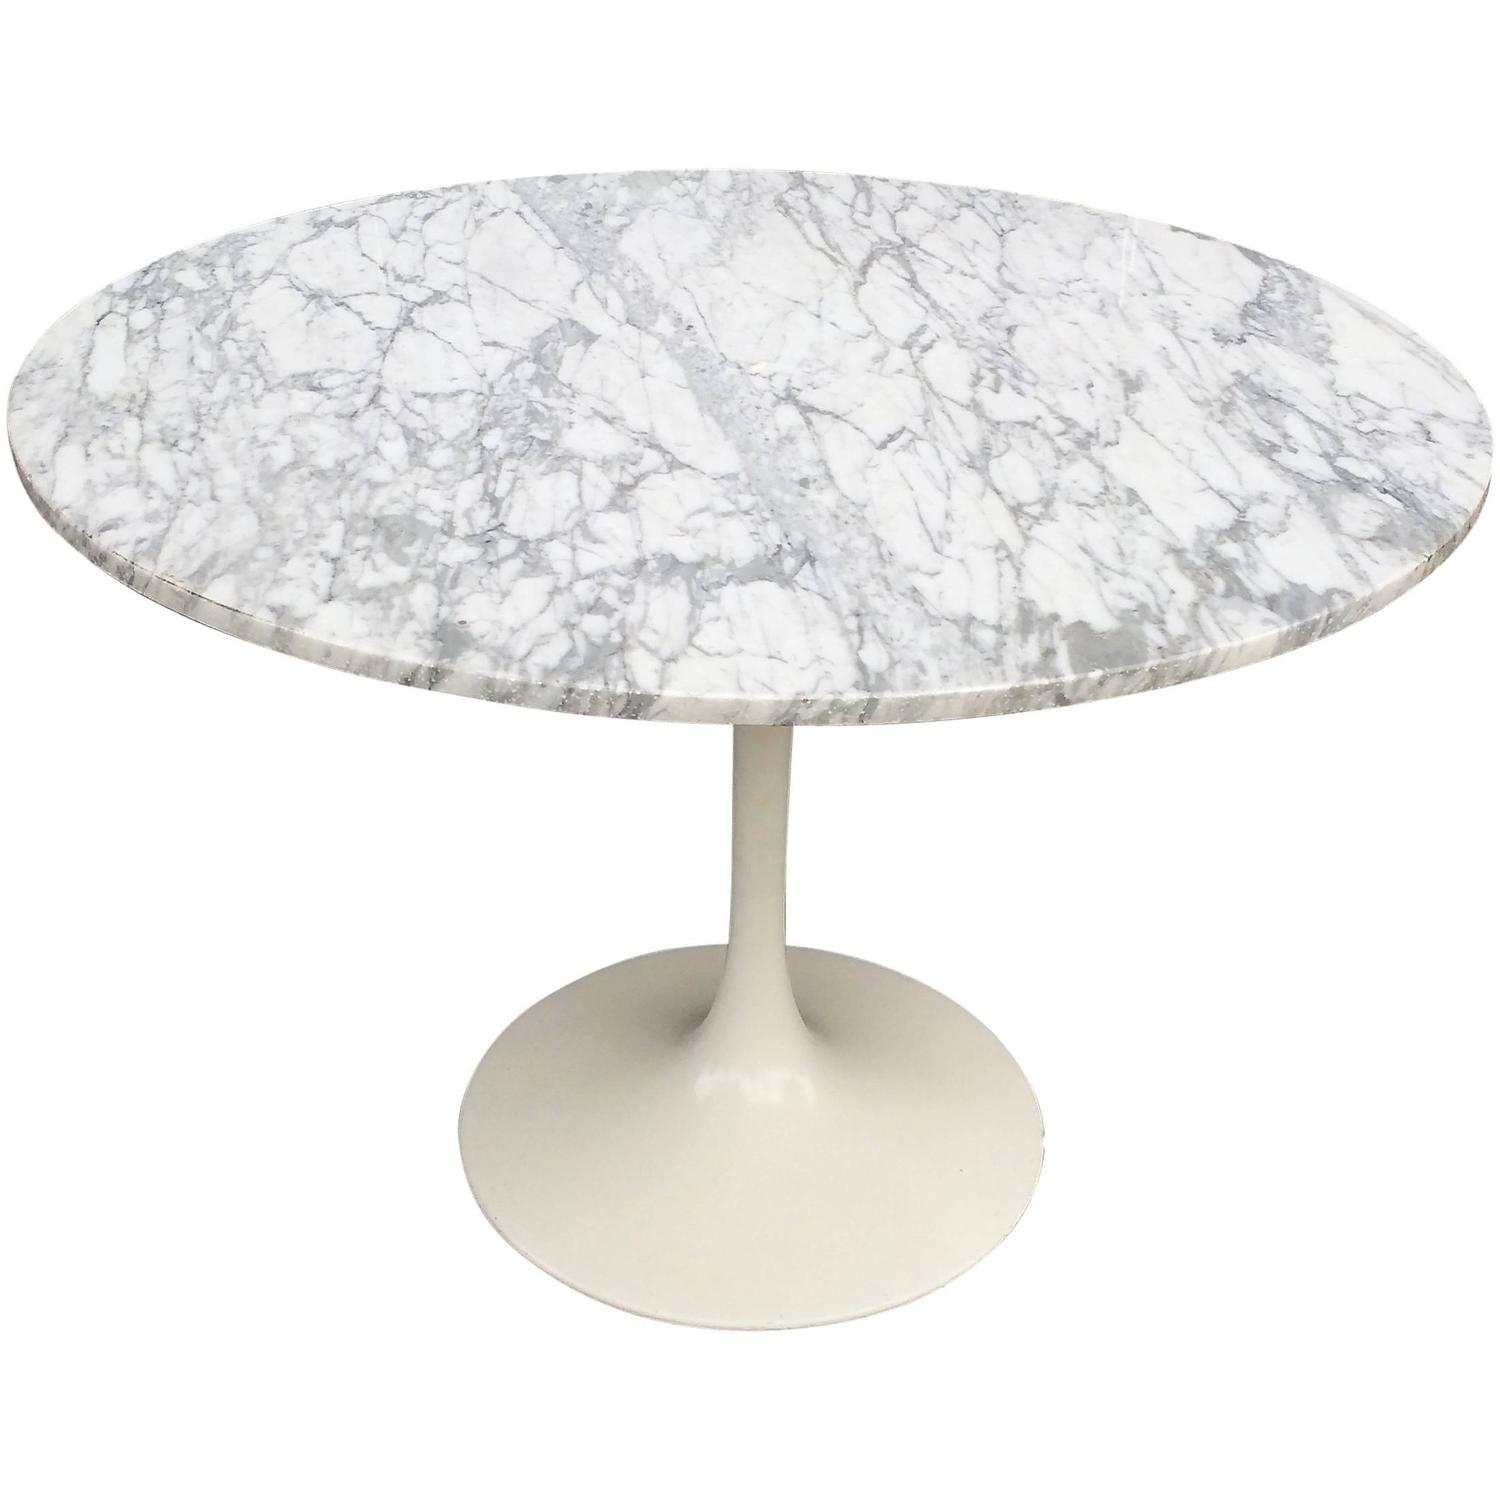 Mid Century Modern Tulip Base Dining Table with Round Marble Top